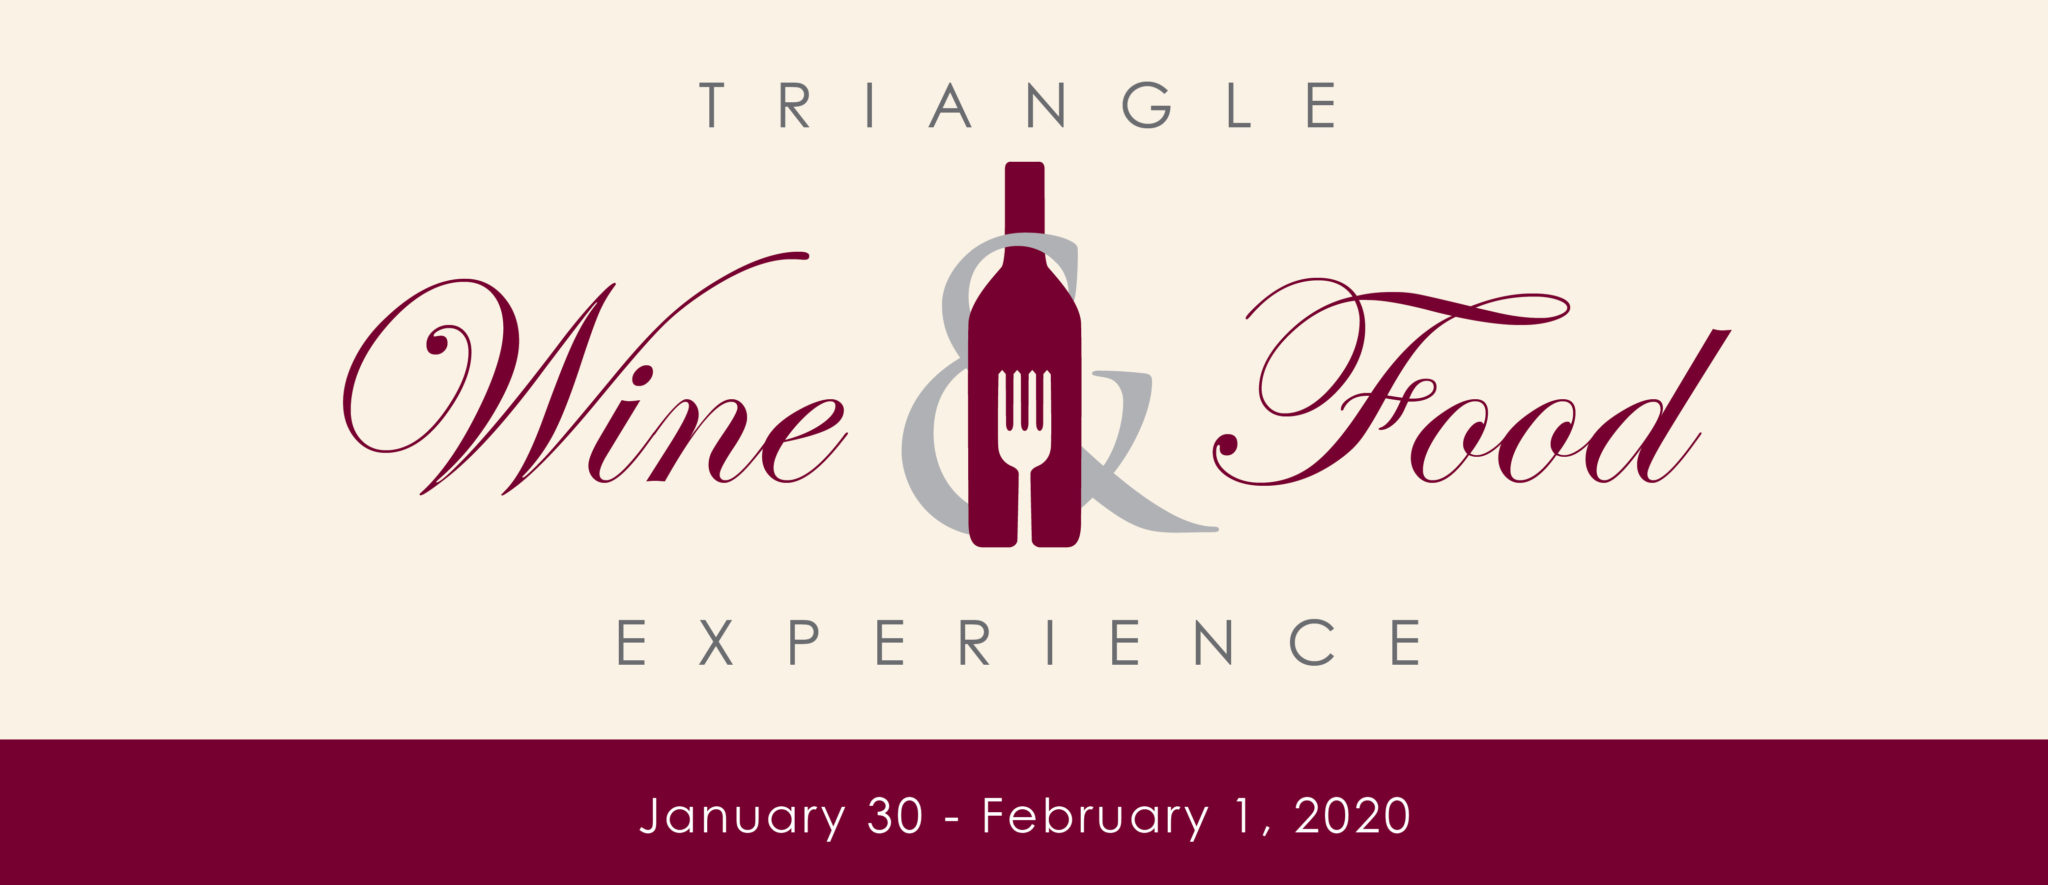 We are excited to be part of the Triangle Wine and Food Experience! Join us on Thursday, January 30, 2020, at 7 p.m. for a special wine dinner benefitting the Frankie Lemmon School and Developmental Center.